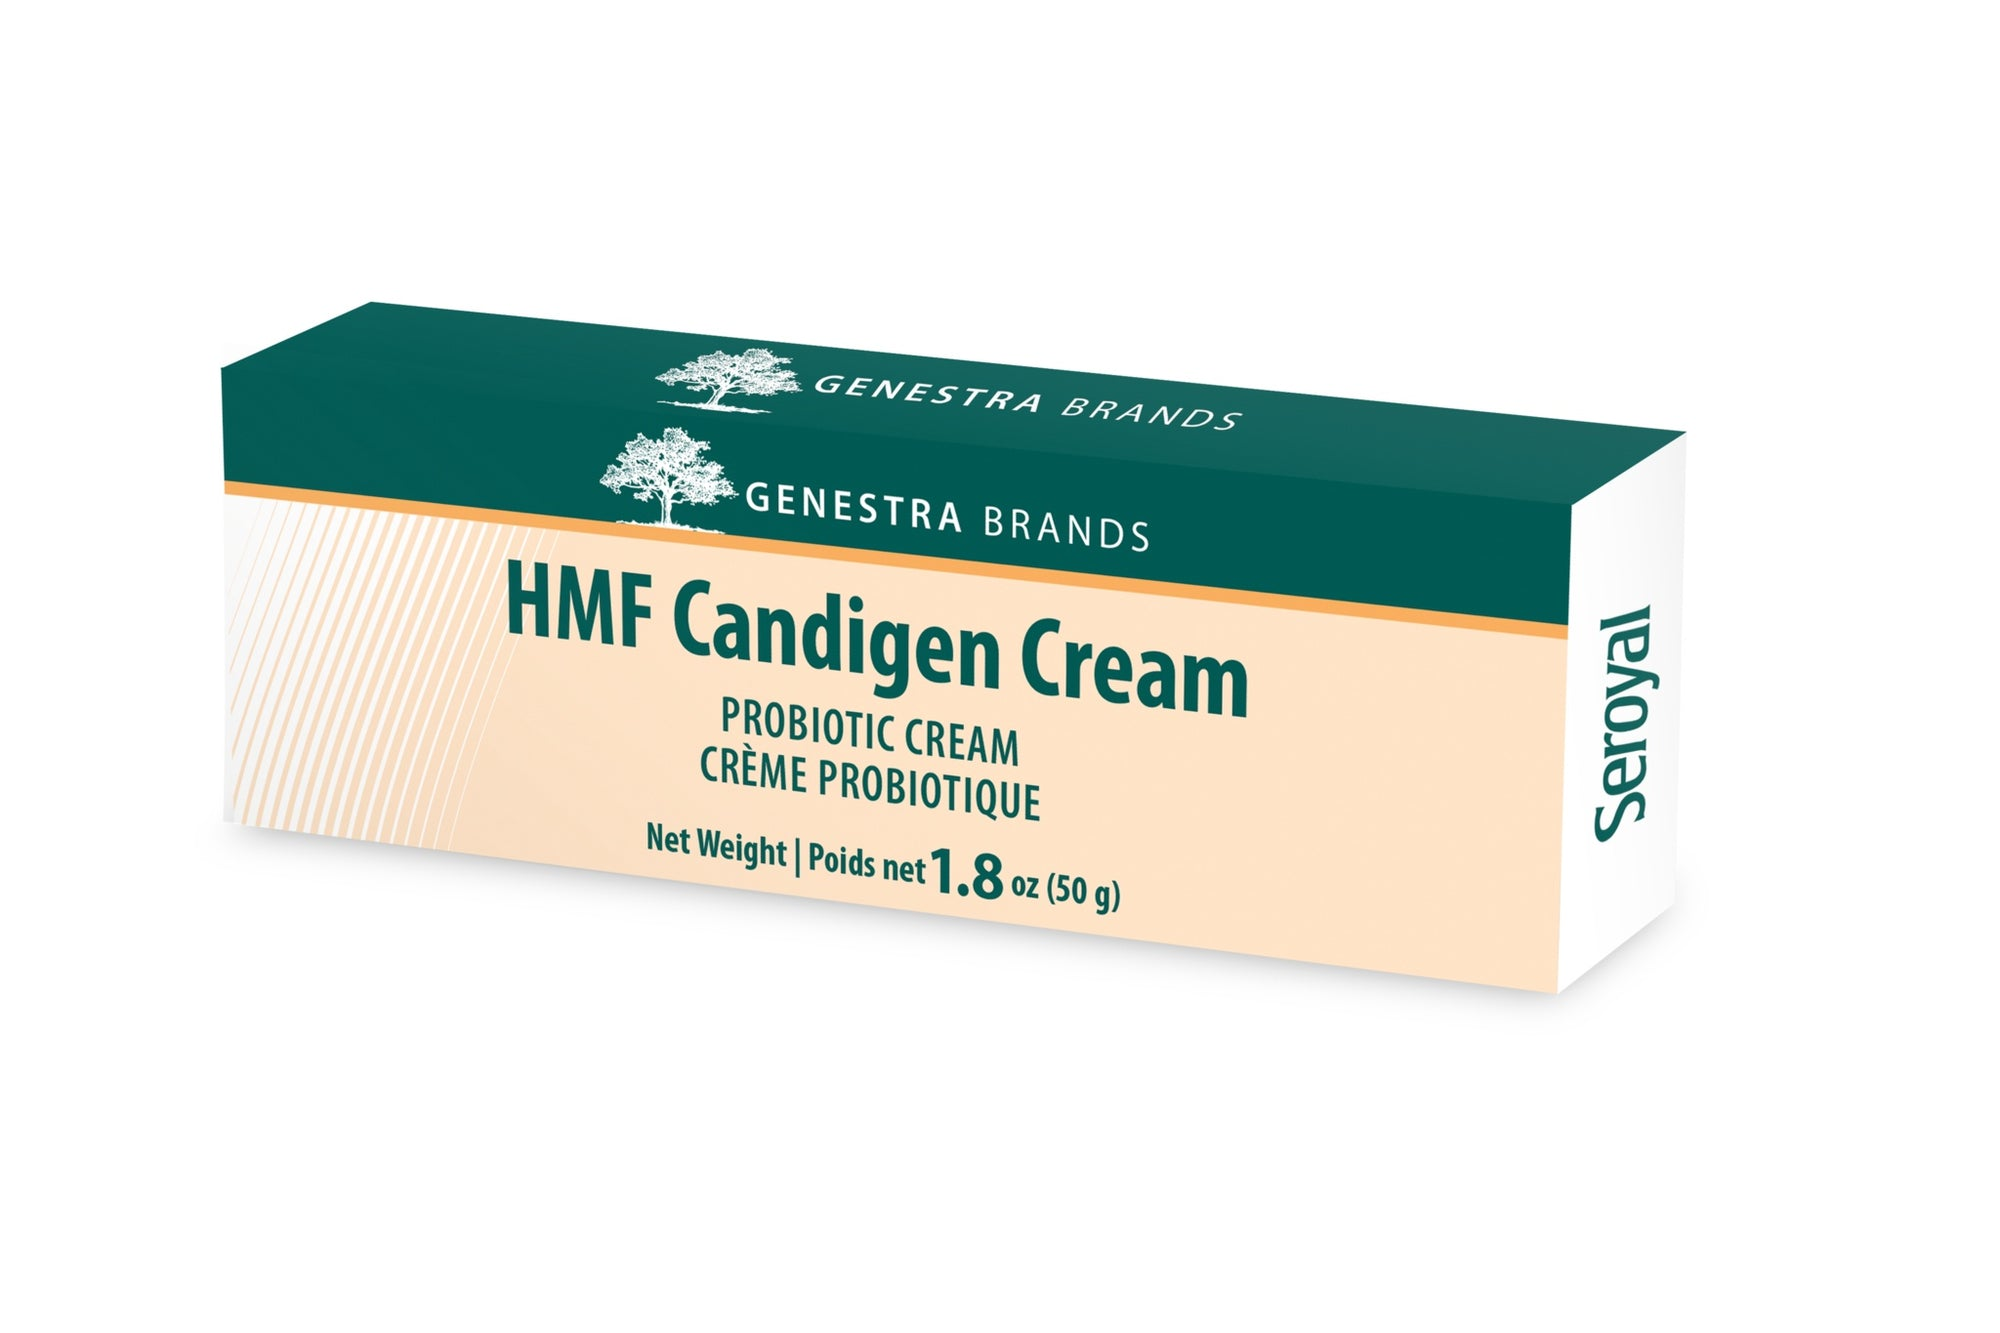 Supplements & Vitamins,Personal Care - Genestra - HMF Candigen Cream, 50g